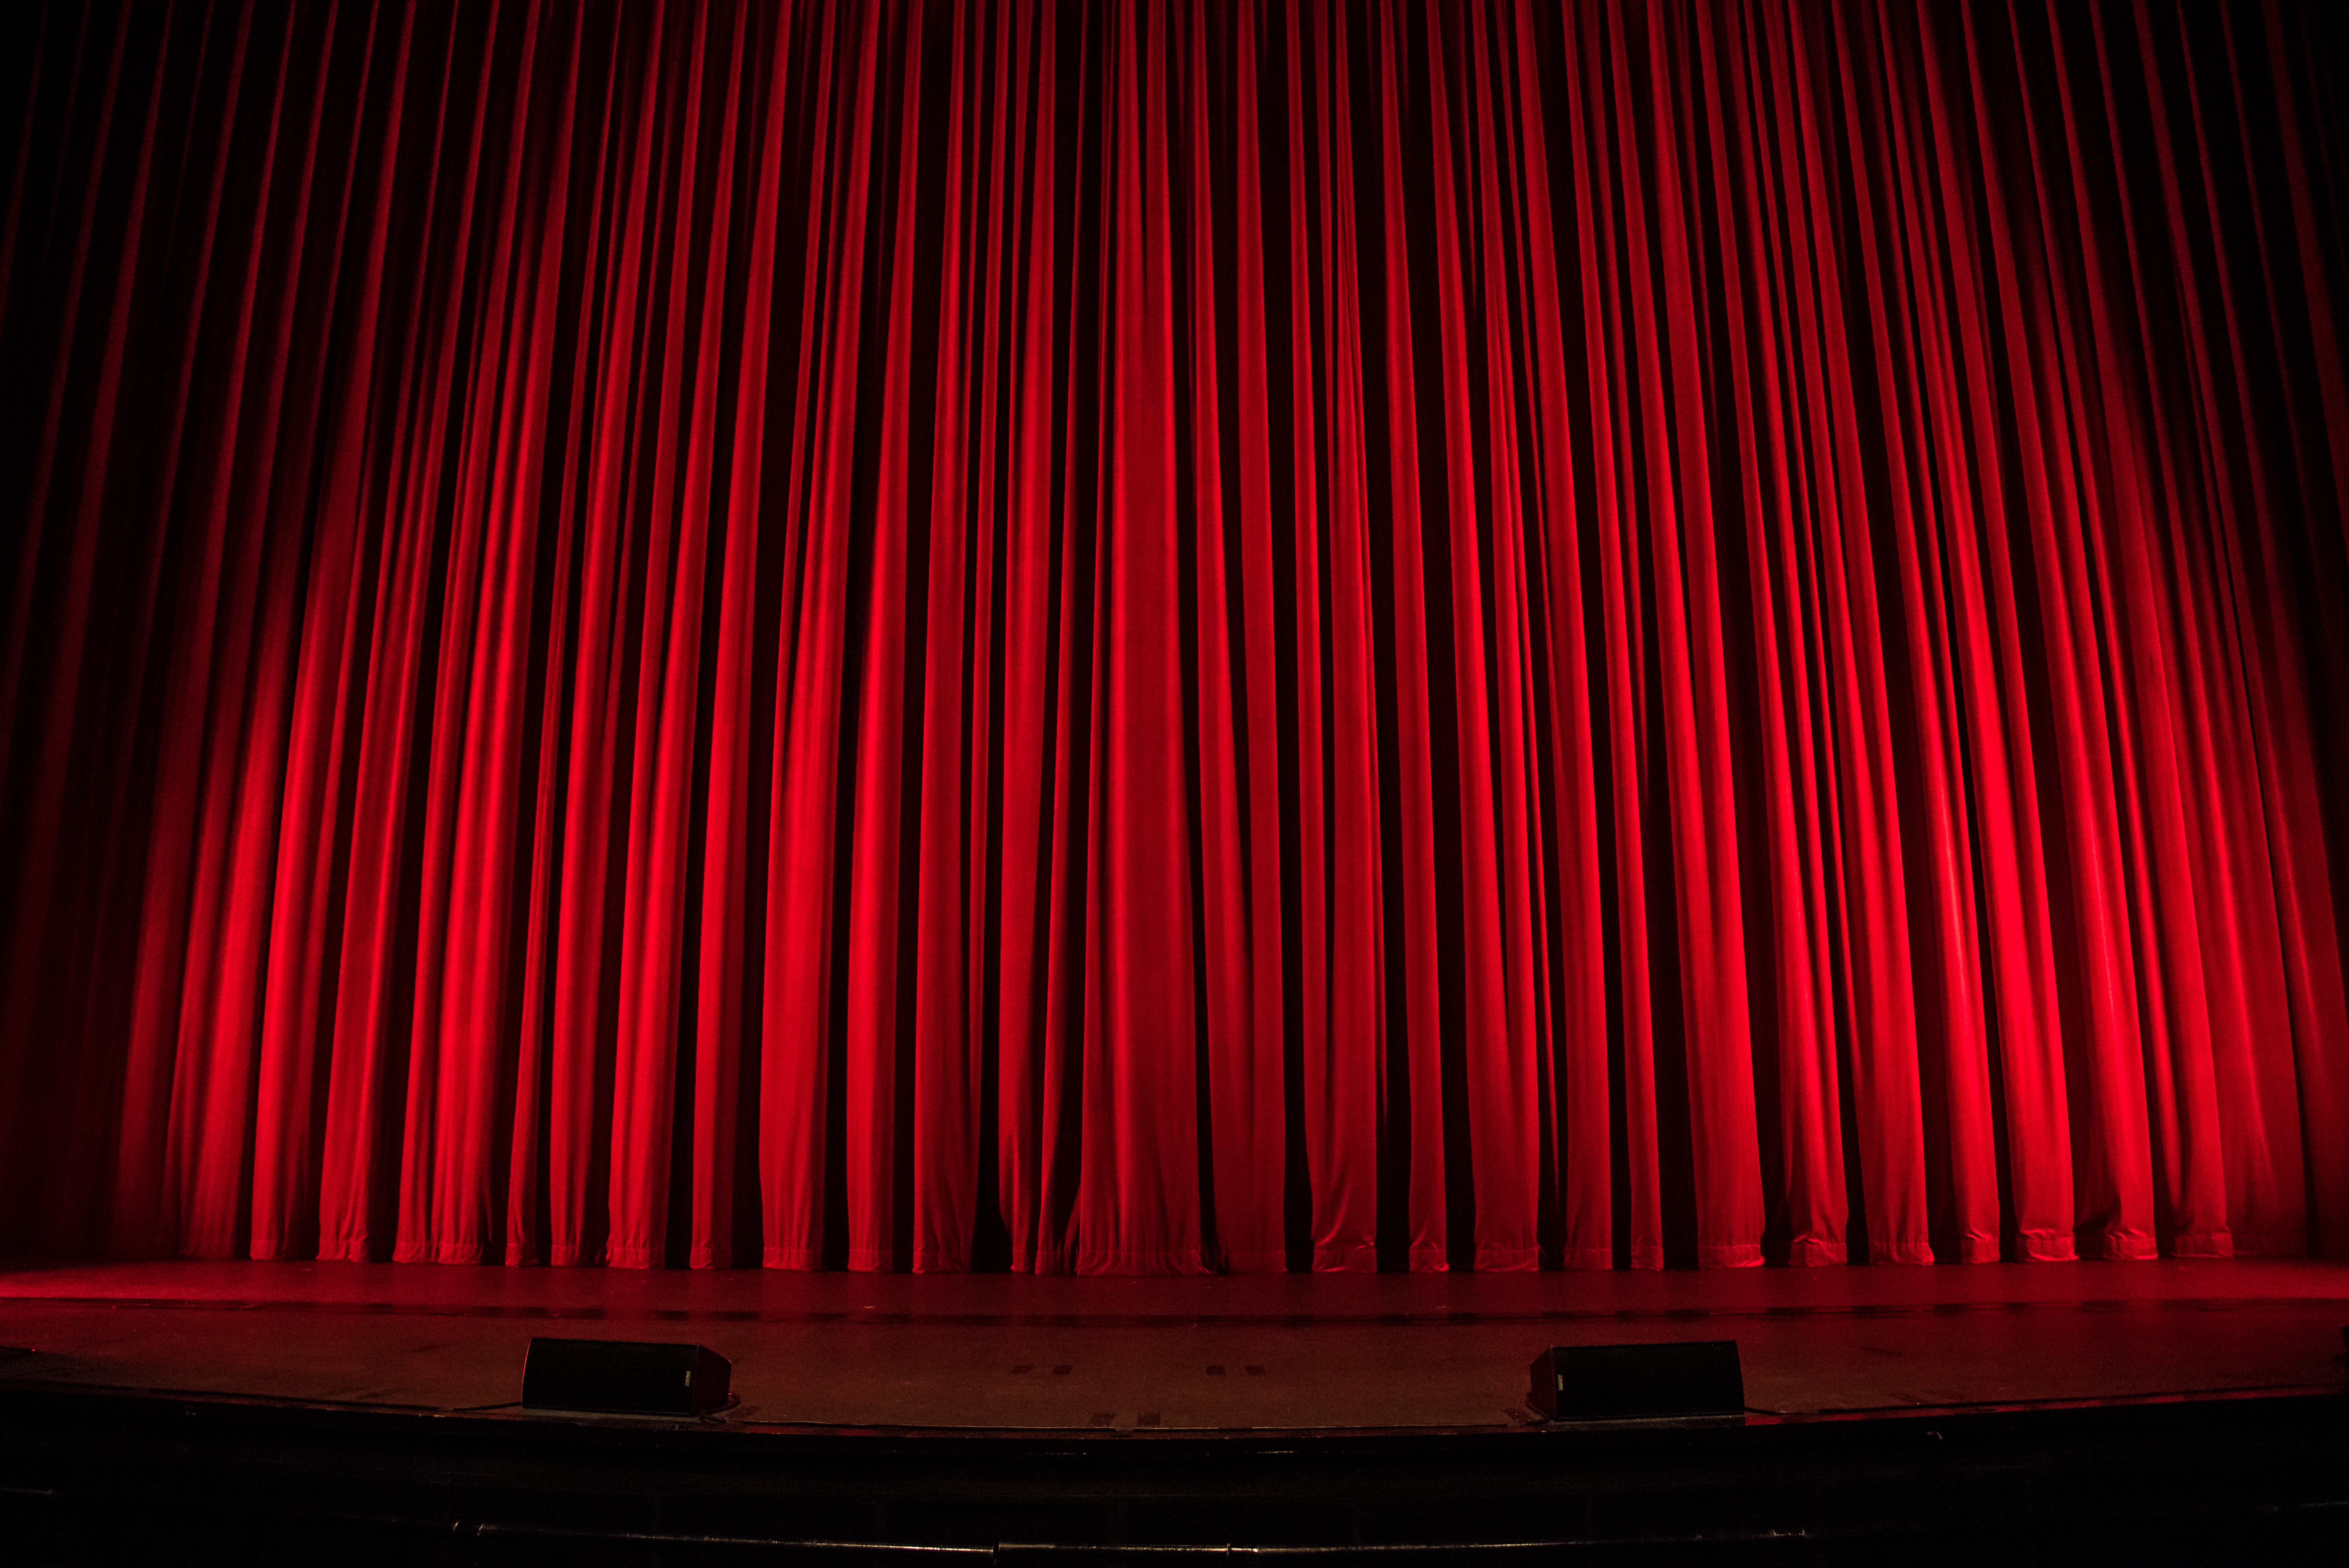 Red curtains drawn on a theatre's stage. Photo courtesy of Rob Laughter on Unsplash.